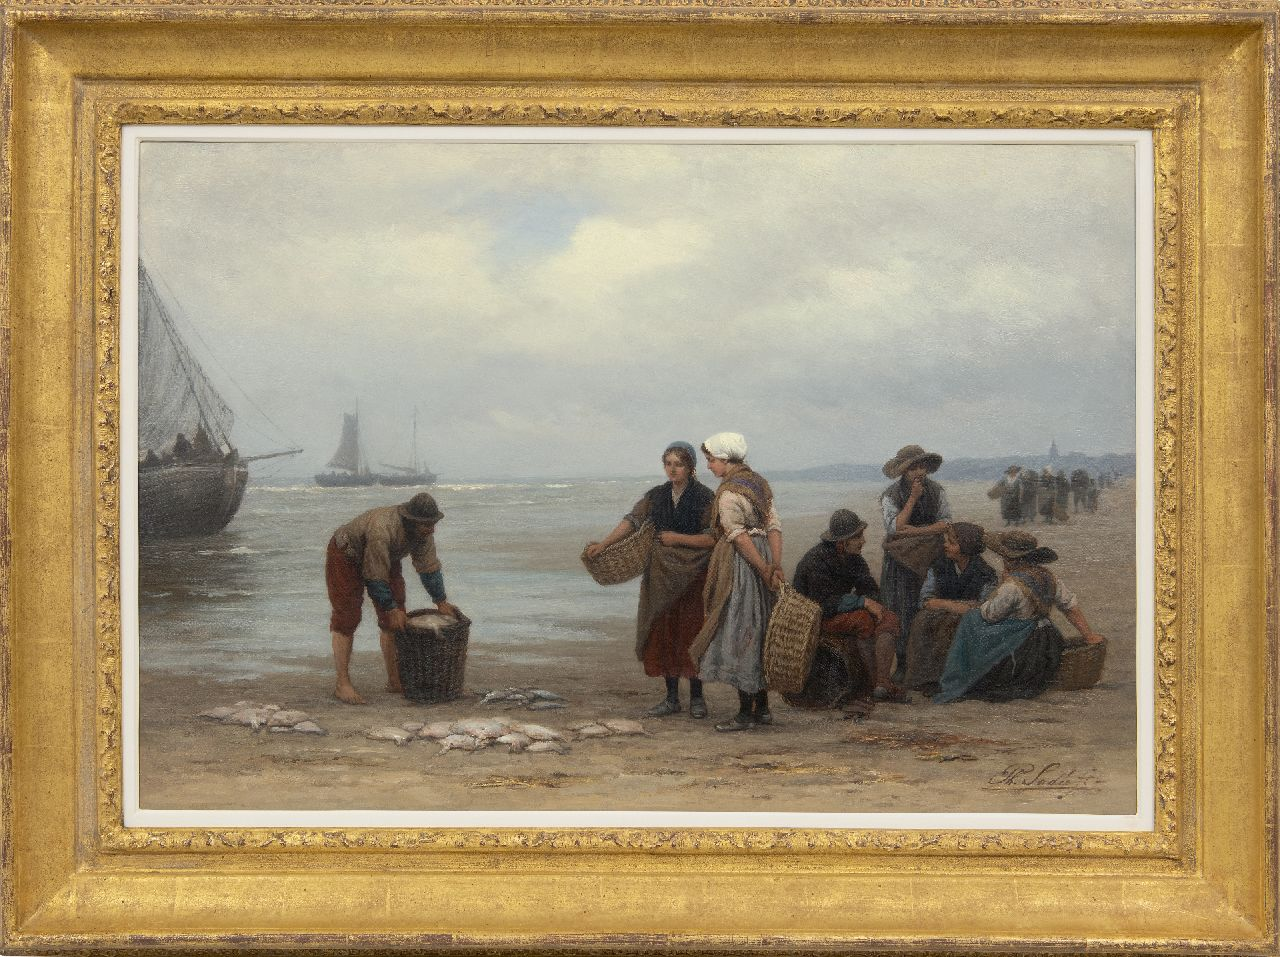 Sadée P.L.J.F.  | Philip Lodewijk Jacob Frederik Sadée, Selling fish on the beach of Scheveningen, oil on canvas 49.9 x 75.0 cm, signed l.r.